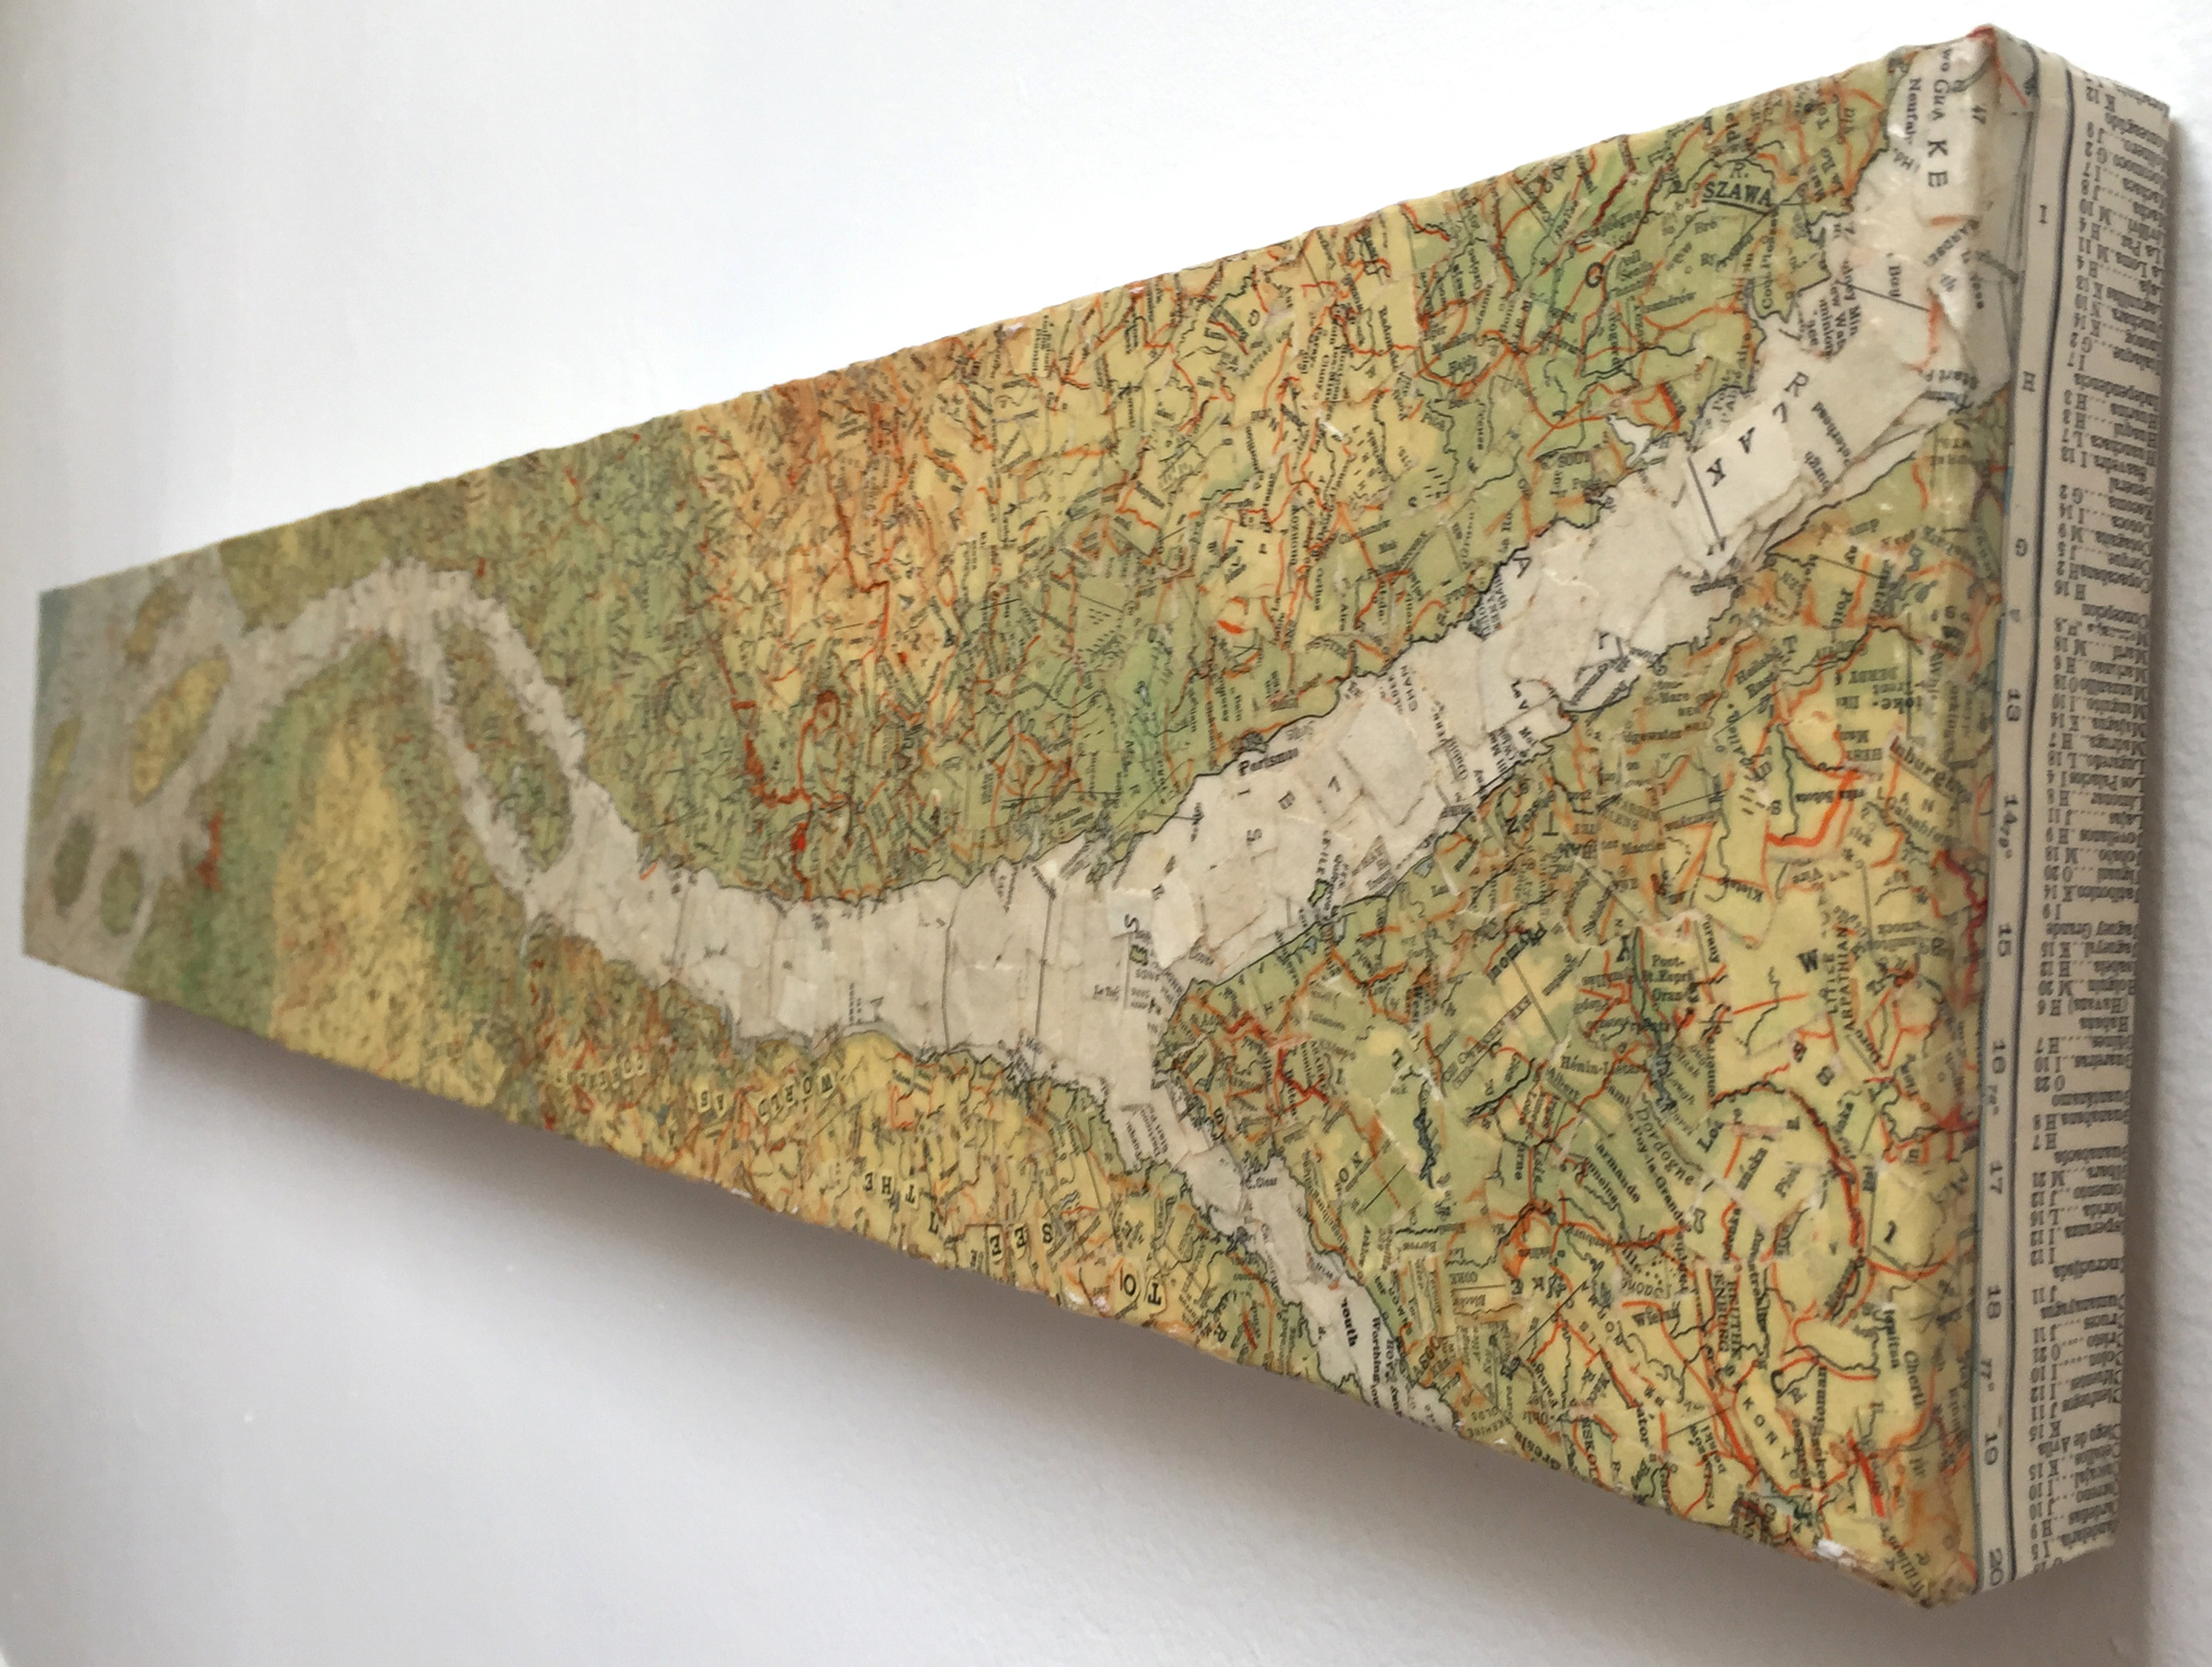 """To See the World..."" (2009)<br>Torn map collage on canvas, 6 x 36 x 2 in."